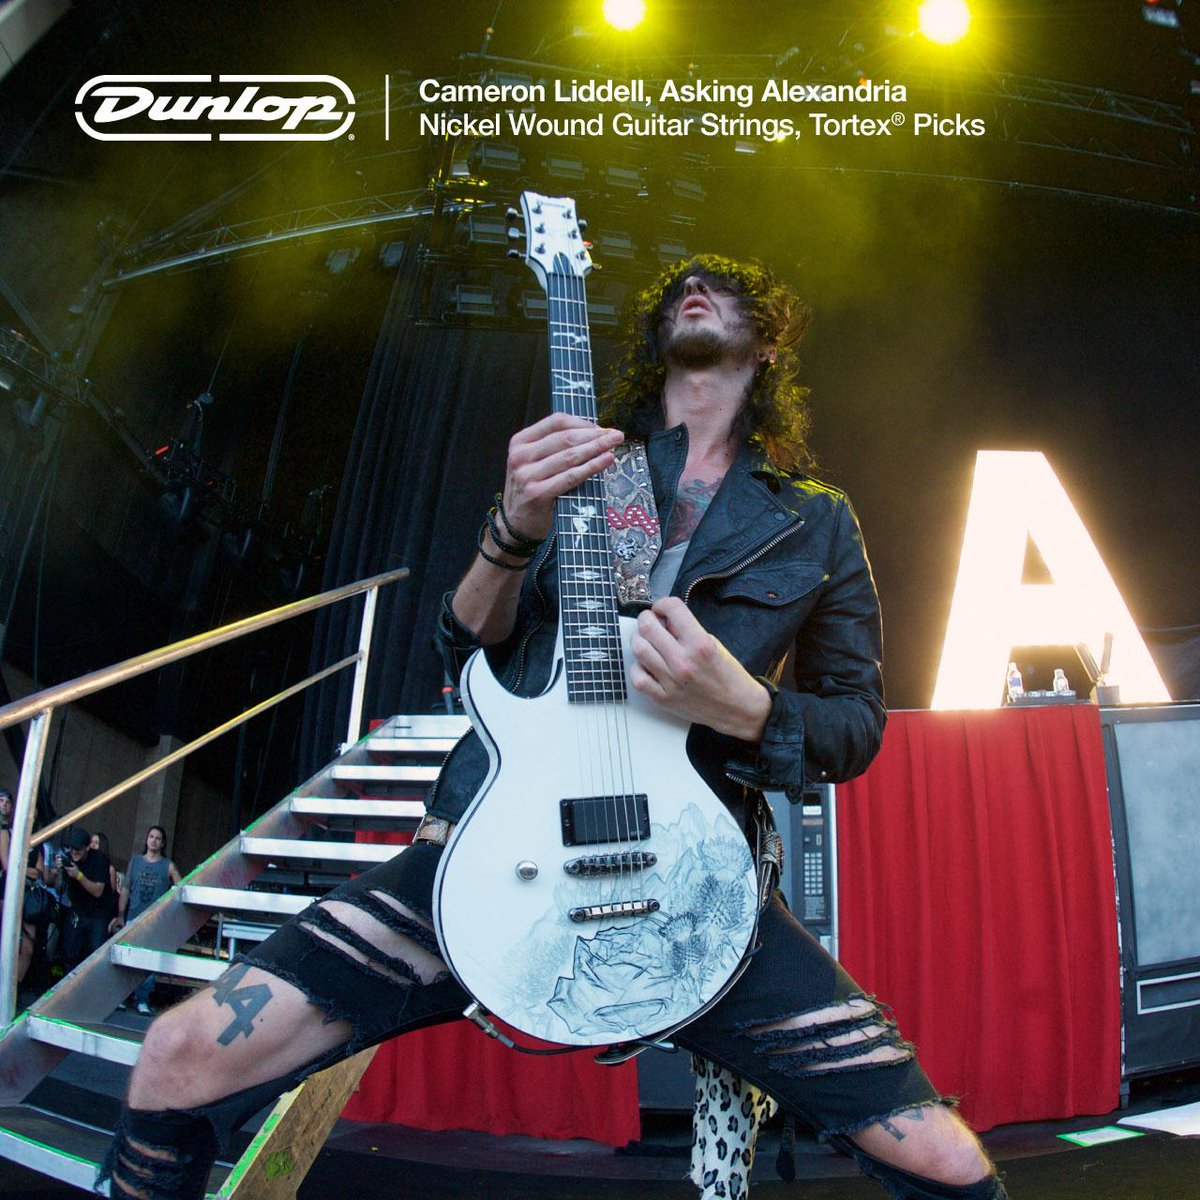 .@aaofficial's @cameronliddell for #DunlopStrings & #Tortex #guitar #picks. Catch them on the @VansWarpedTour now! http://t.co/UeGWbYeKQV